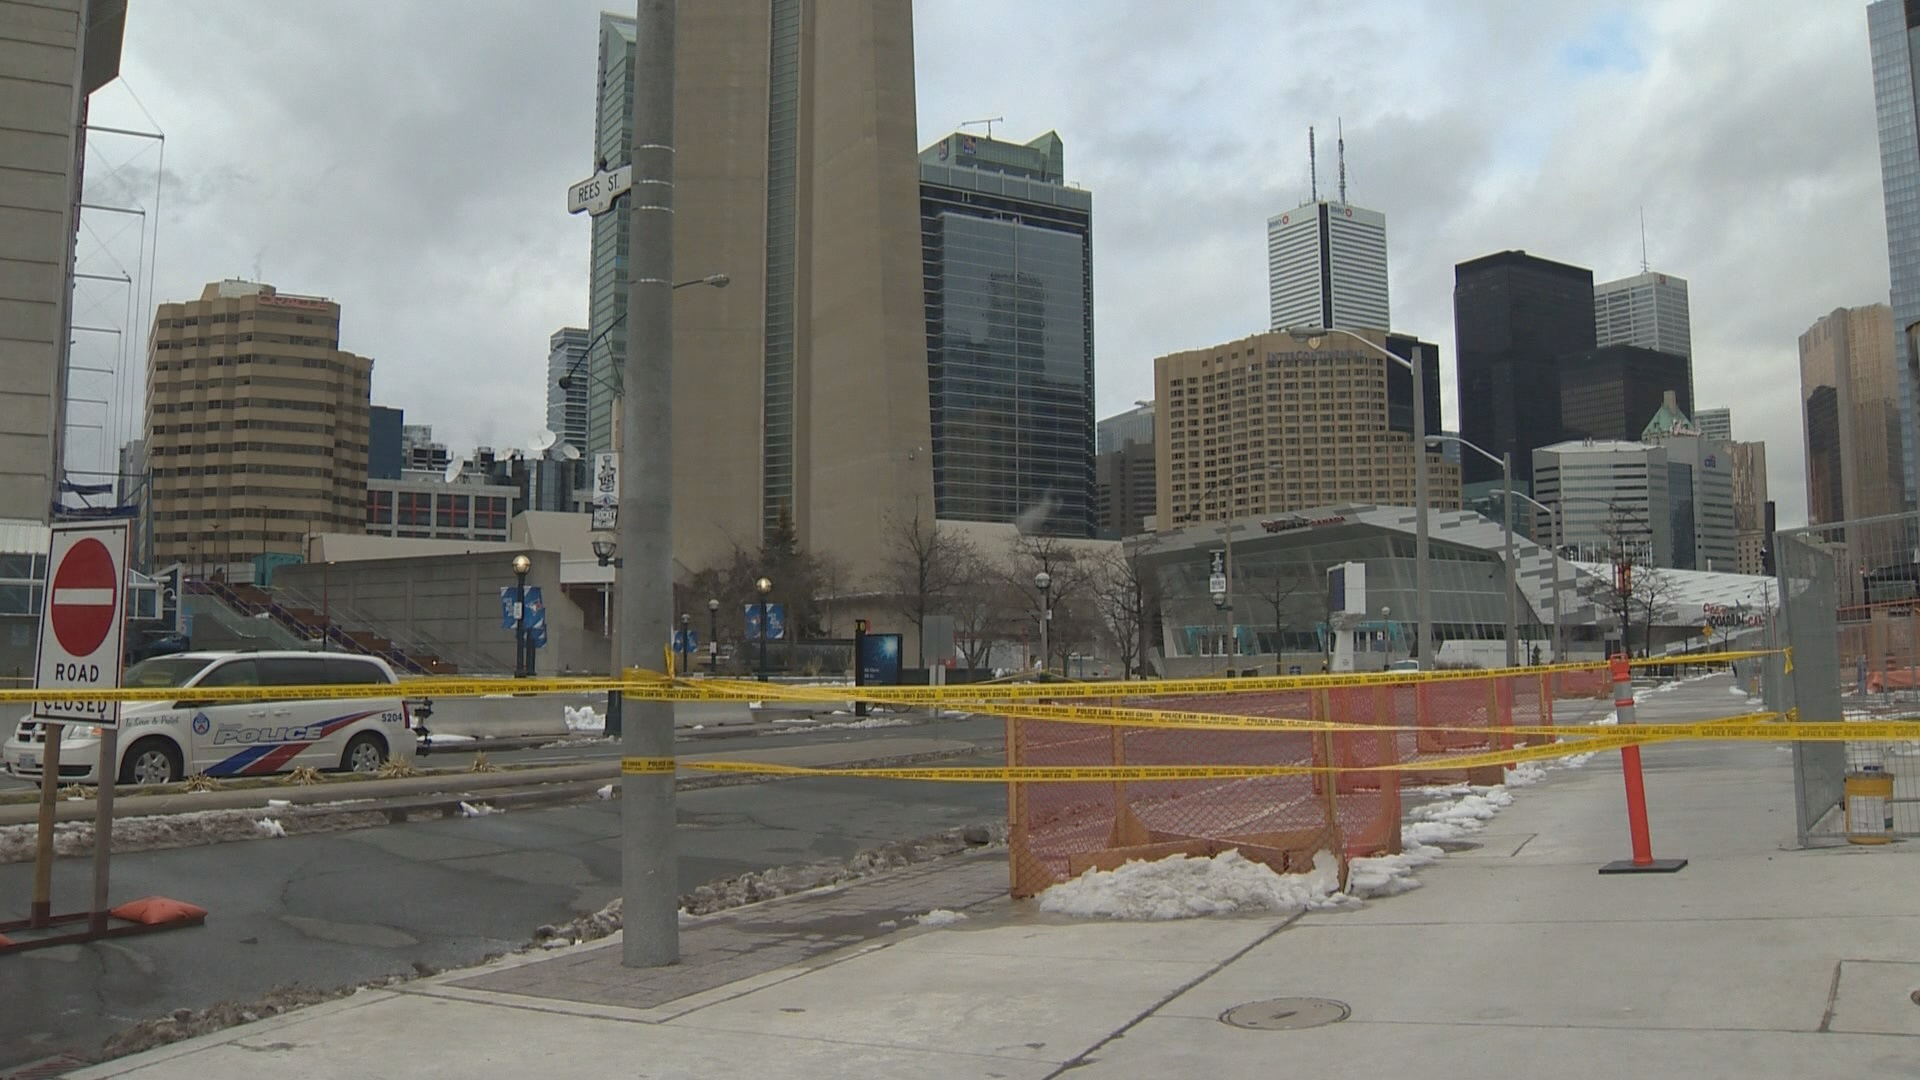 CN Tower closed for fourth day due to falling ice risk